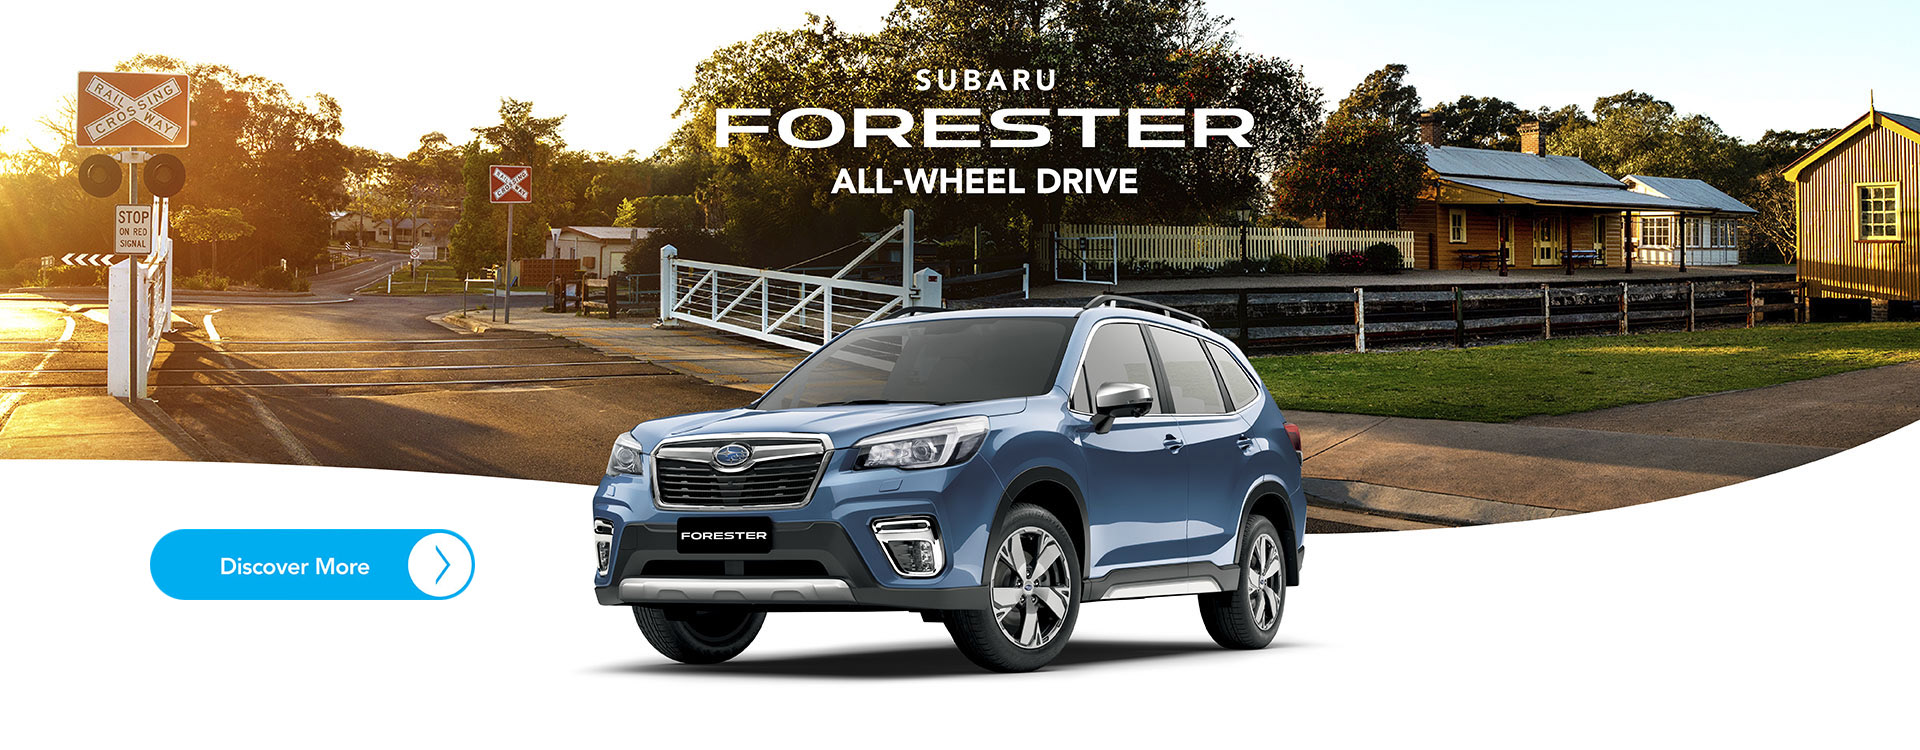 New Subaru Forester, including Hybrid e-Boxer, now available at High Country Subaru, Cooma Snowy Mountains. Test Drive Today!